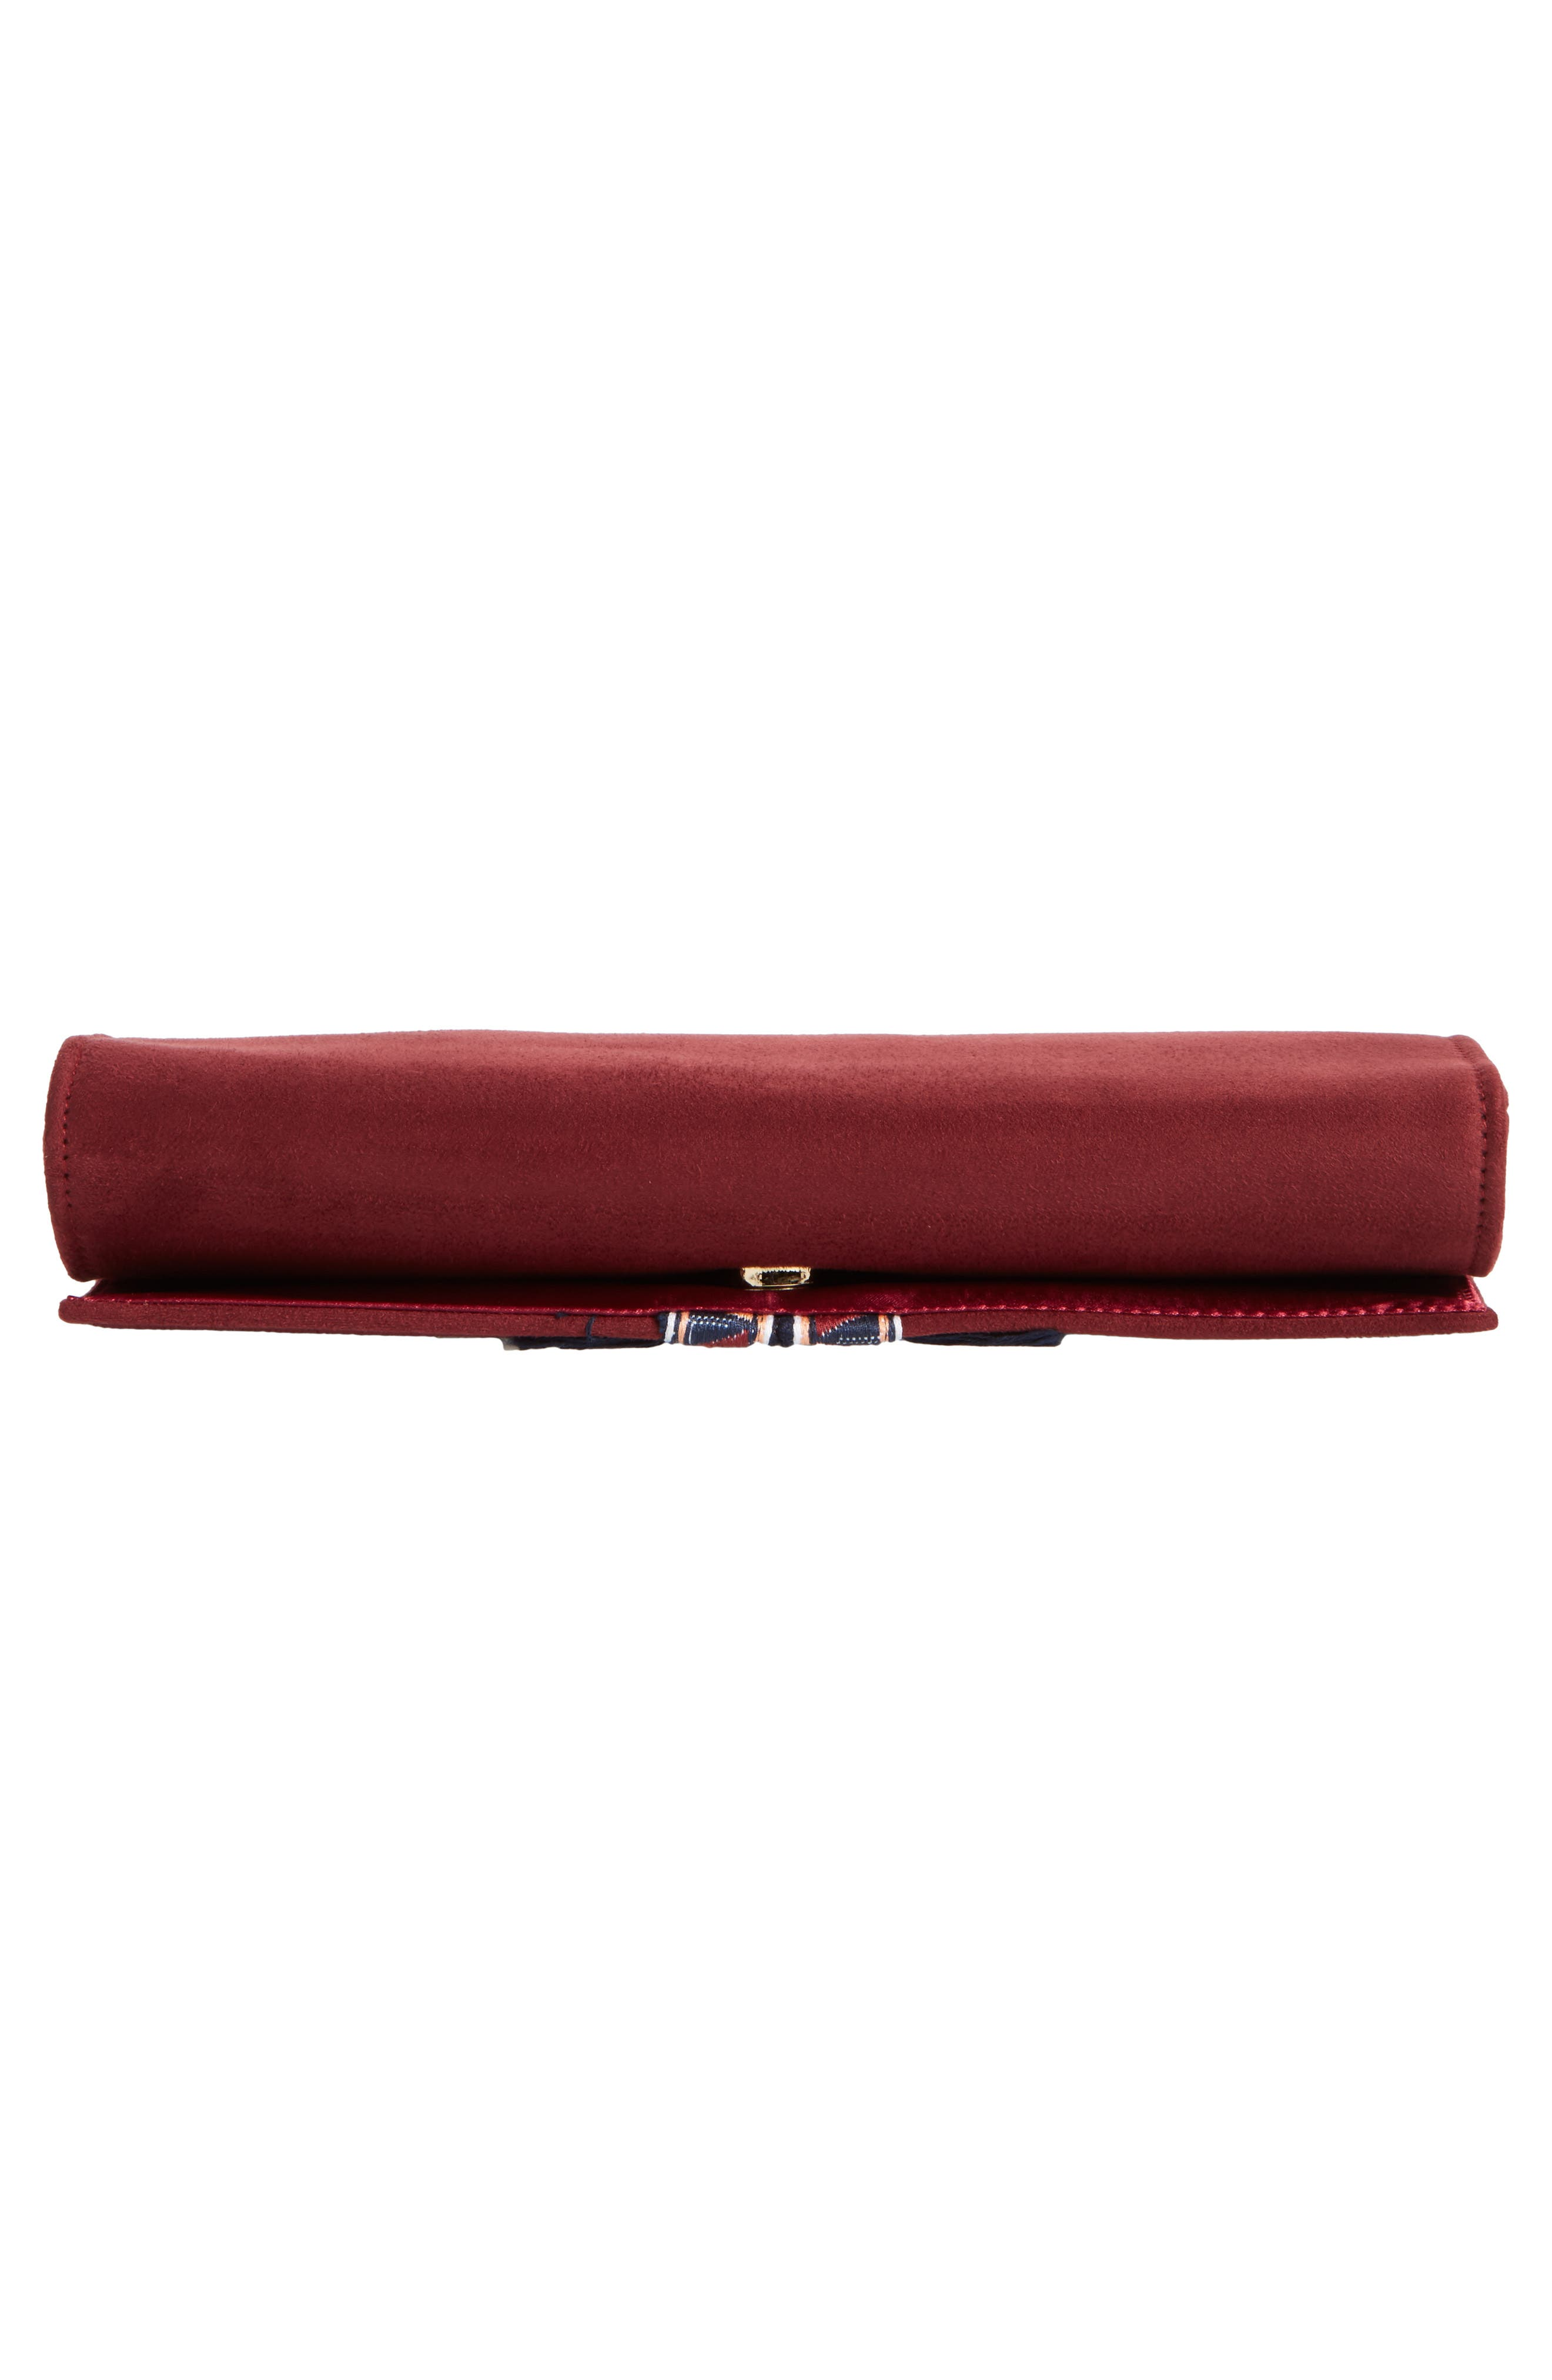 Rada Embroidered Clutch,                             Alternate thumbnail 12, color,